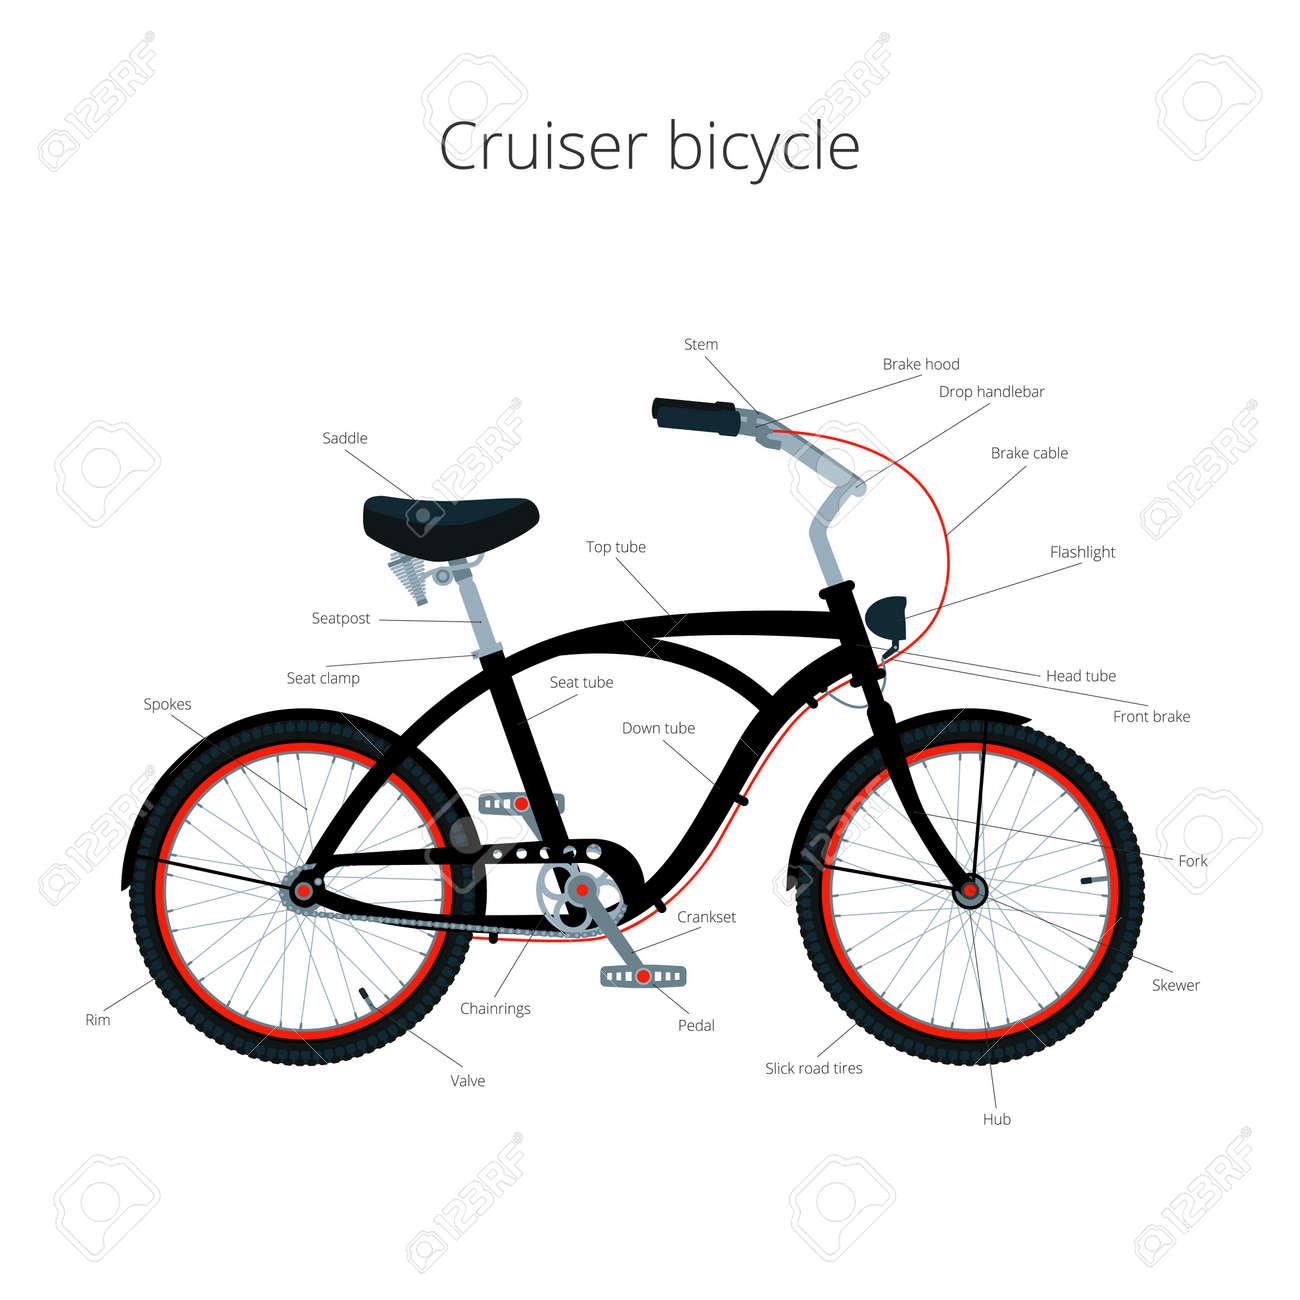 Cruiser Bicycle Infographic Elements And Parts Royalty Free